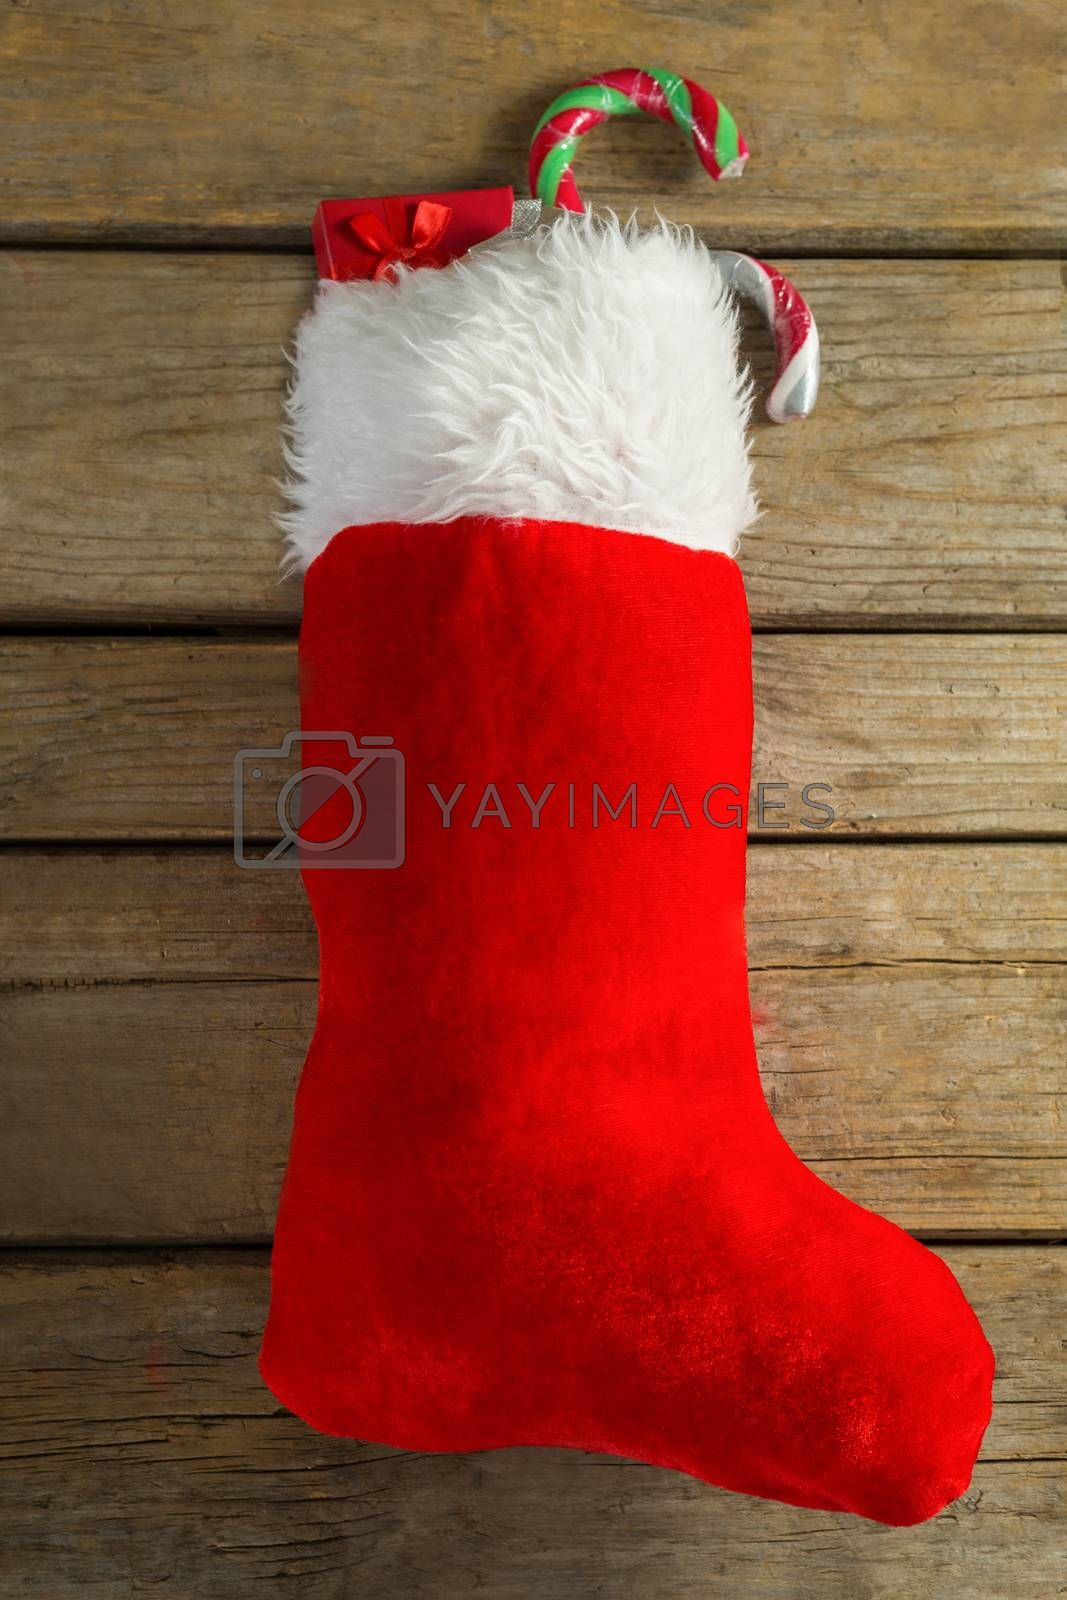 Wrapped gift box and candy cane in stocking against wooden wall by Wavebreakmedia